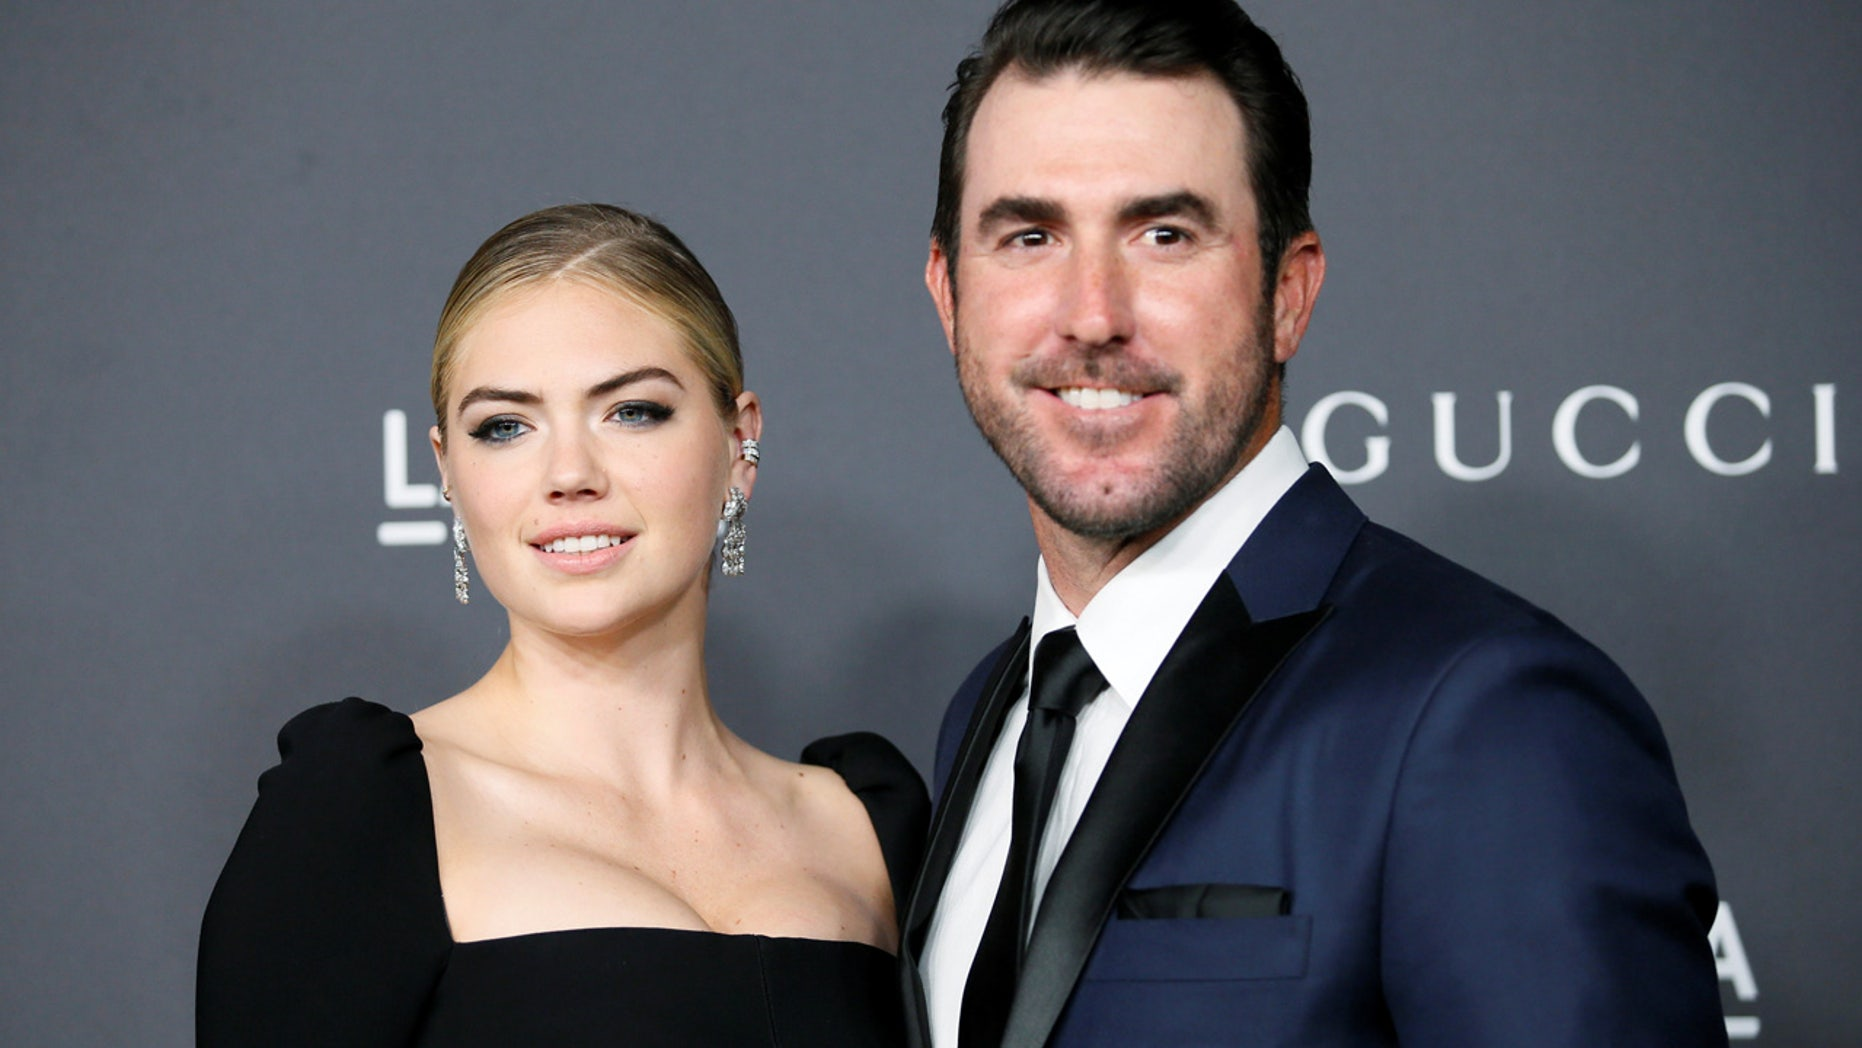 Kate Upton Welcomes Baby Girl With Husband Justin Verlander